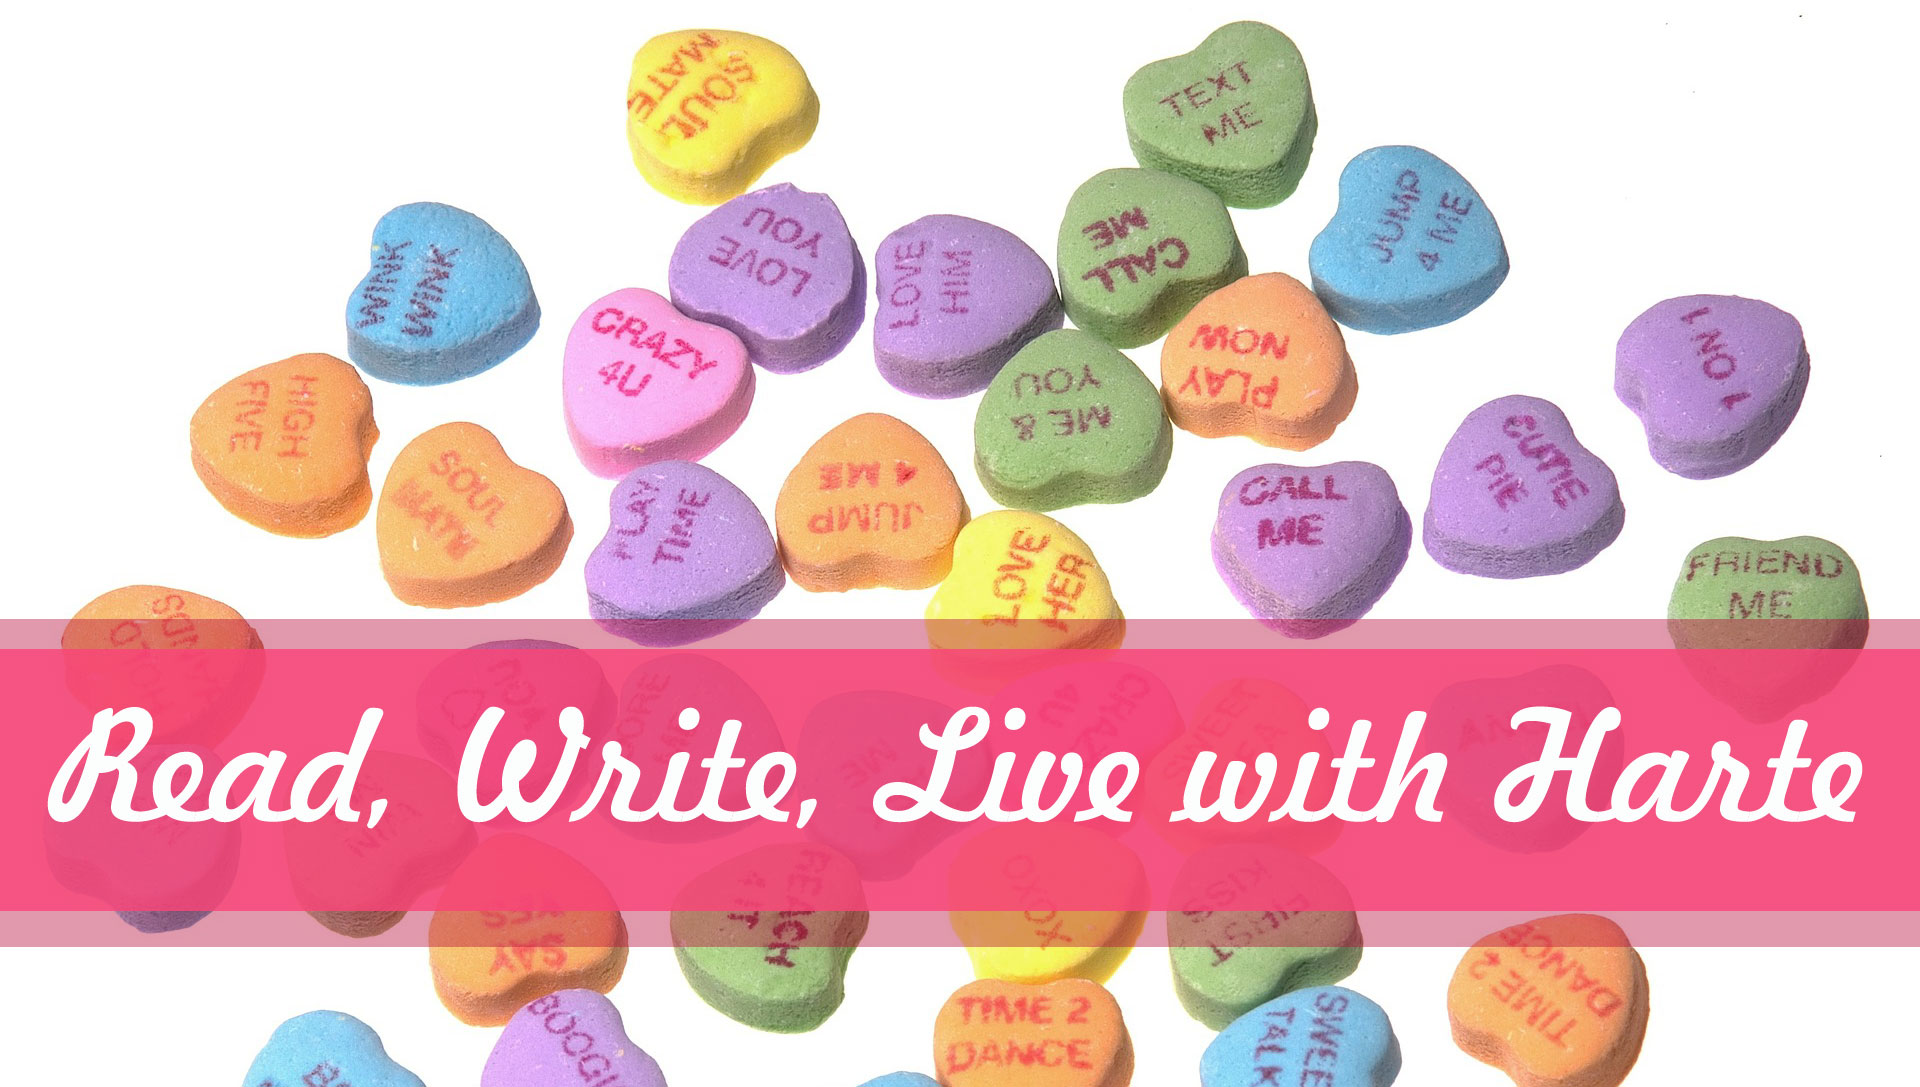 Read, Write, Live with Harte: Second Chance at Love